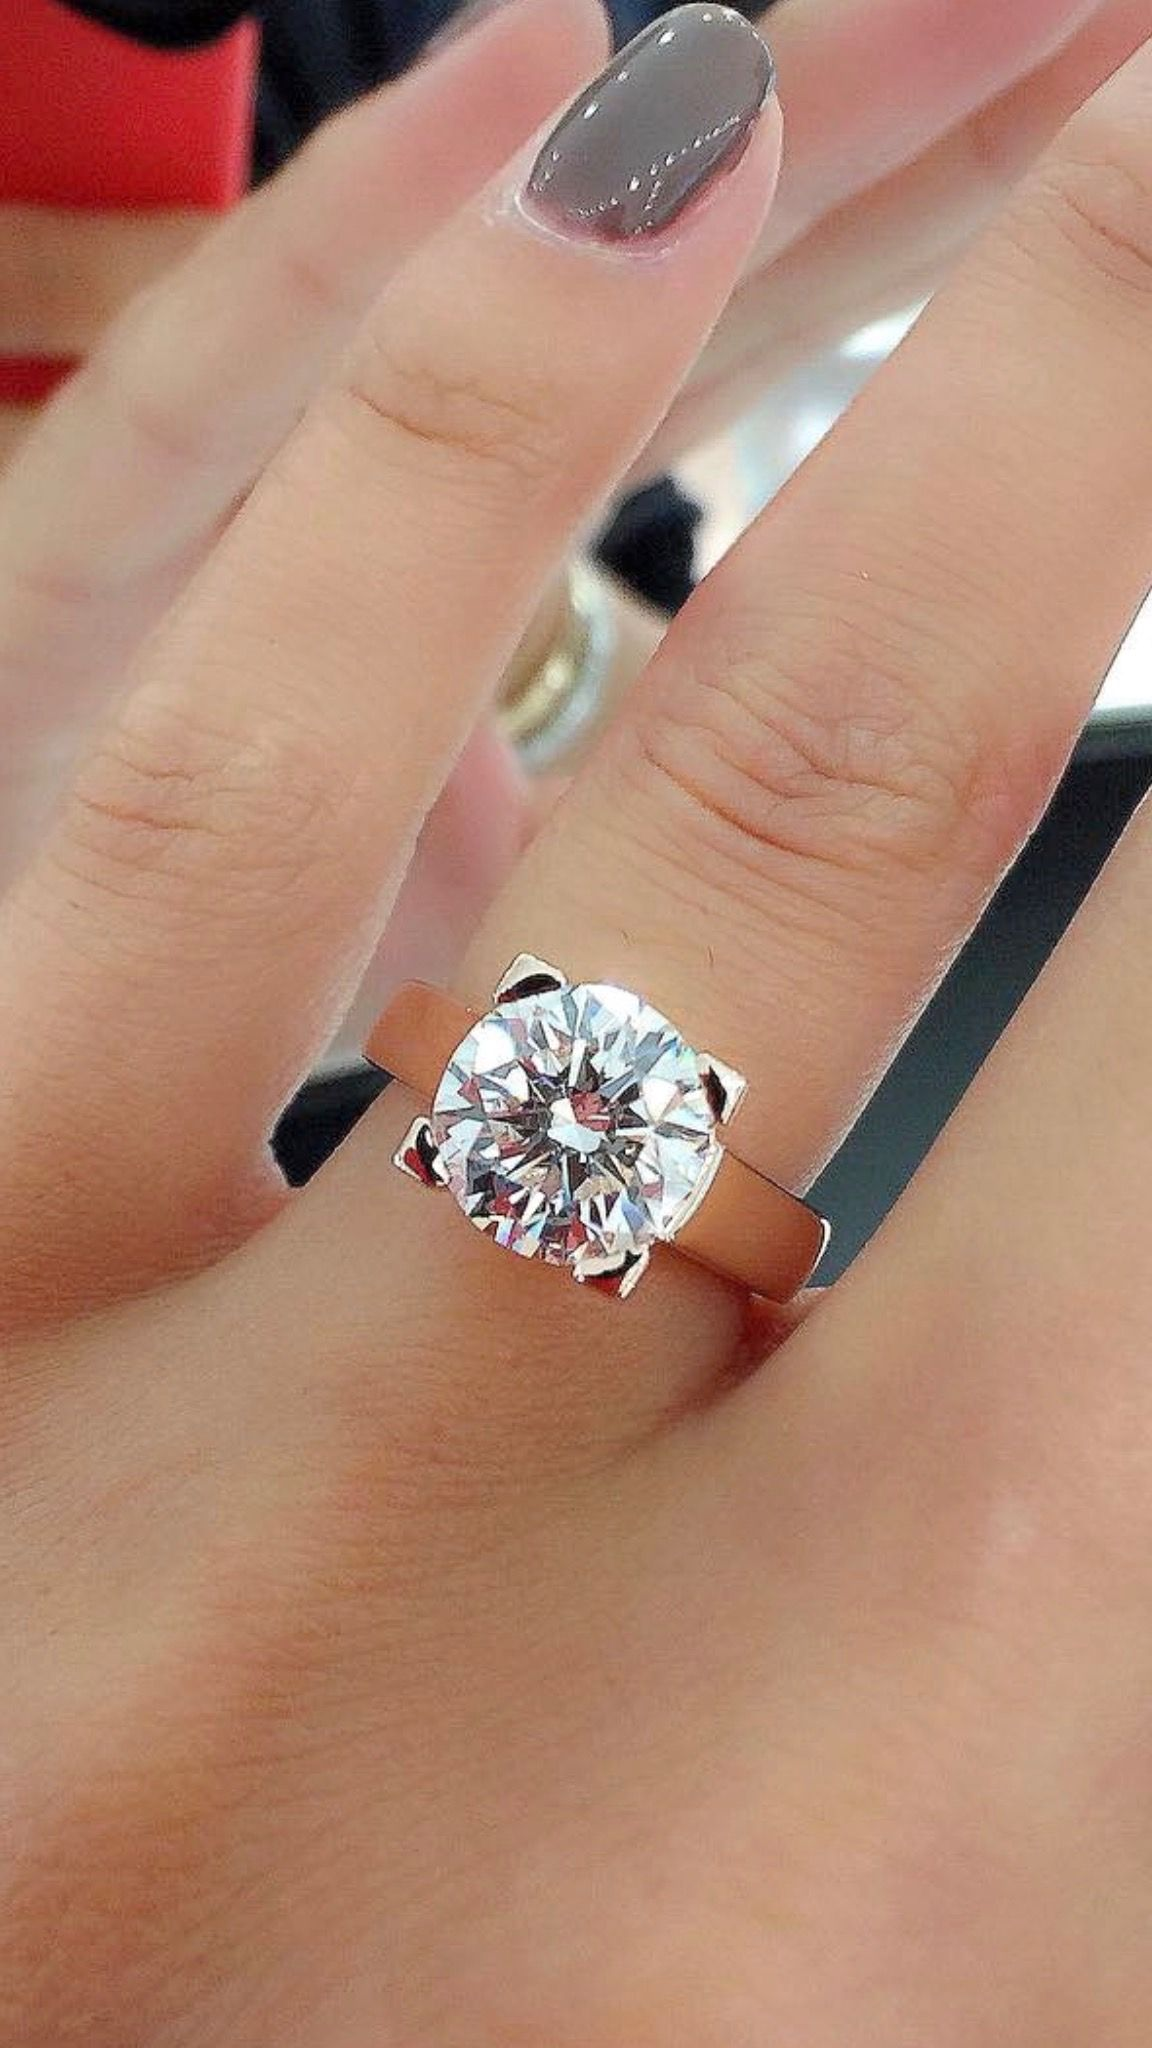 flawless simulant fashion ruxwona wedding pave carat rings of petite akgxqua gold white low engagement preset pictures diamond carot in round ring promise cut solitaire profile